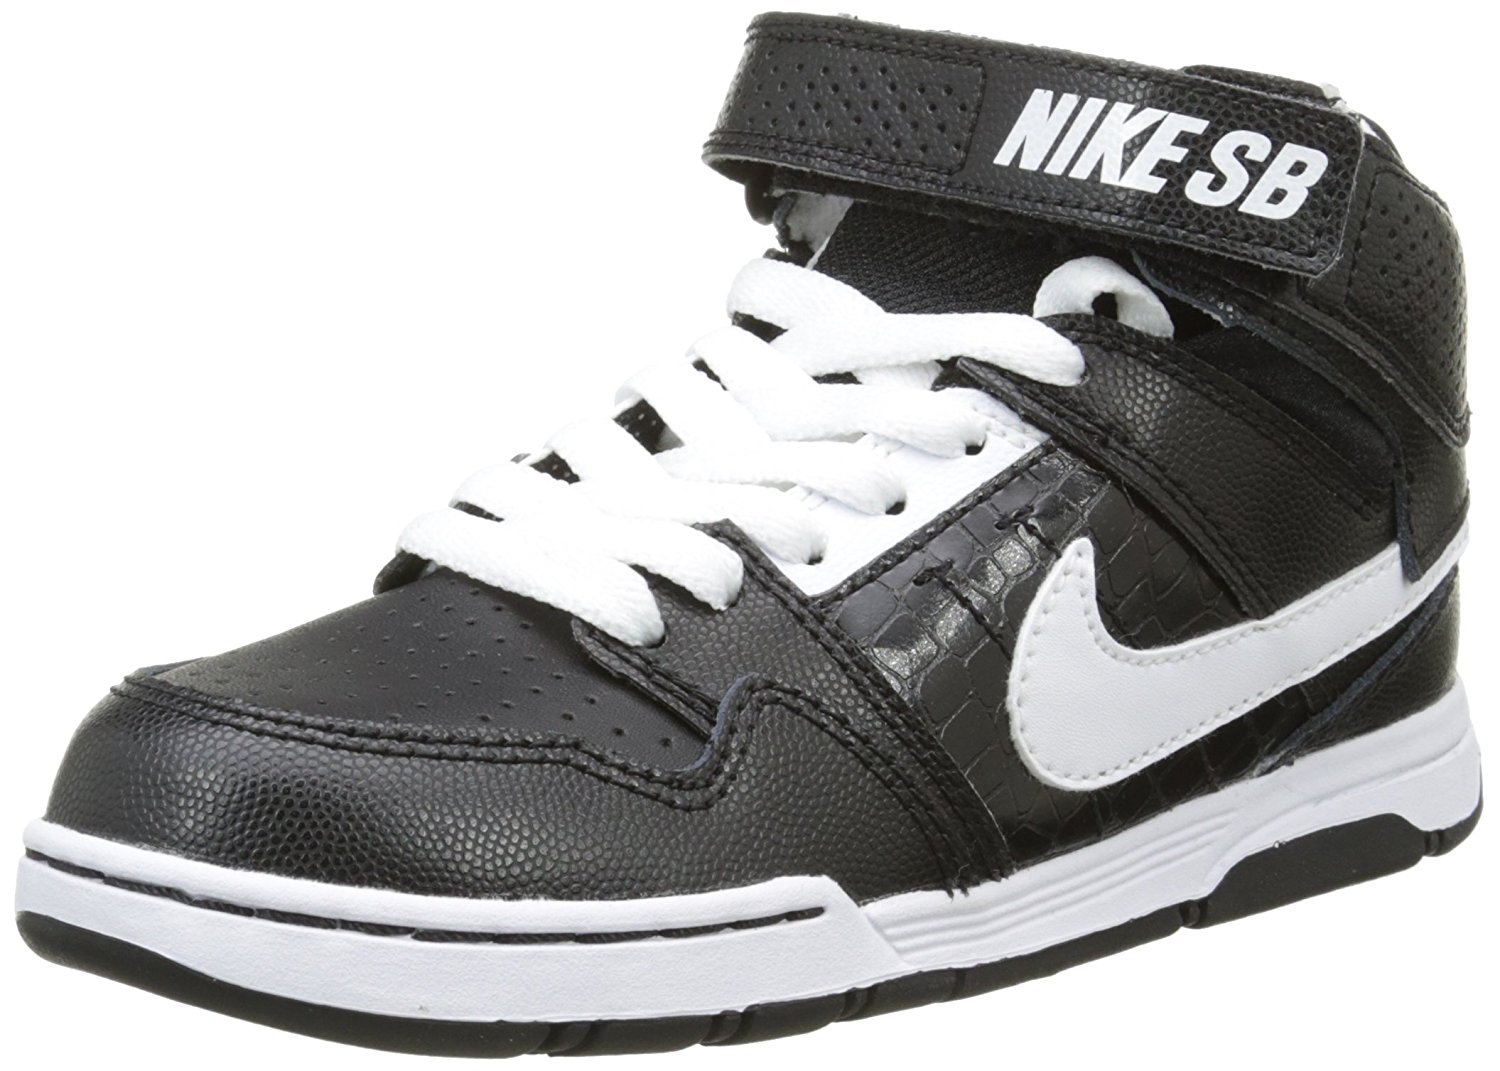 0e43b10da Get Quotations · Nike Kids Mogan Mid 2 Jr B Skate Shoe